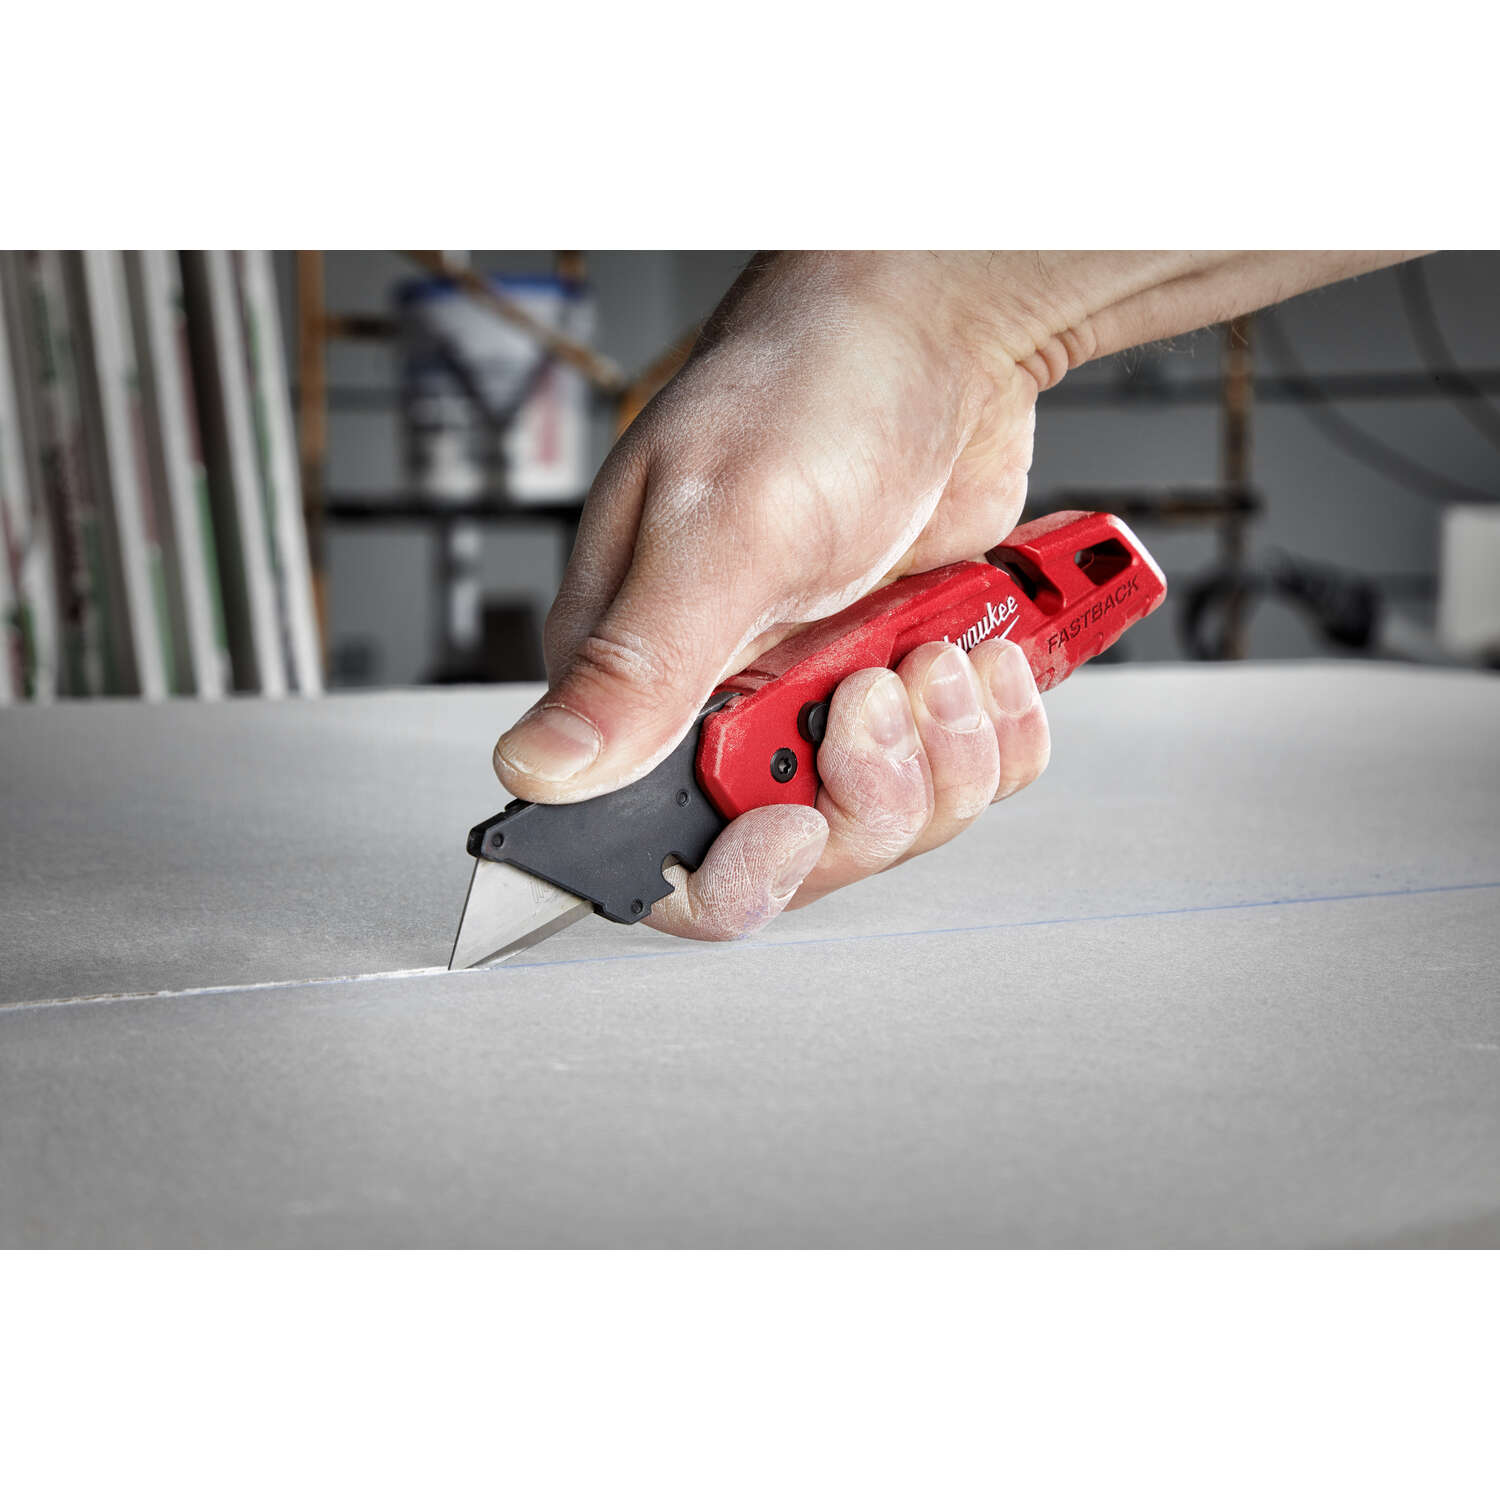 Milwaukee  Fastback  Press and Flip  Utility Knife Set  2 pk Red  6-1/2 in.